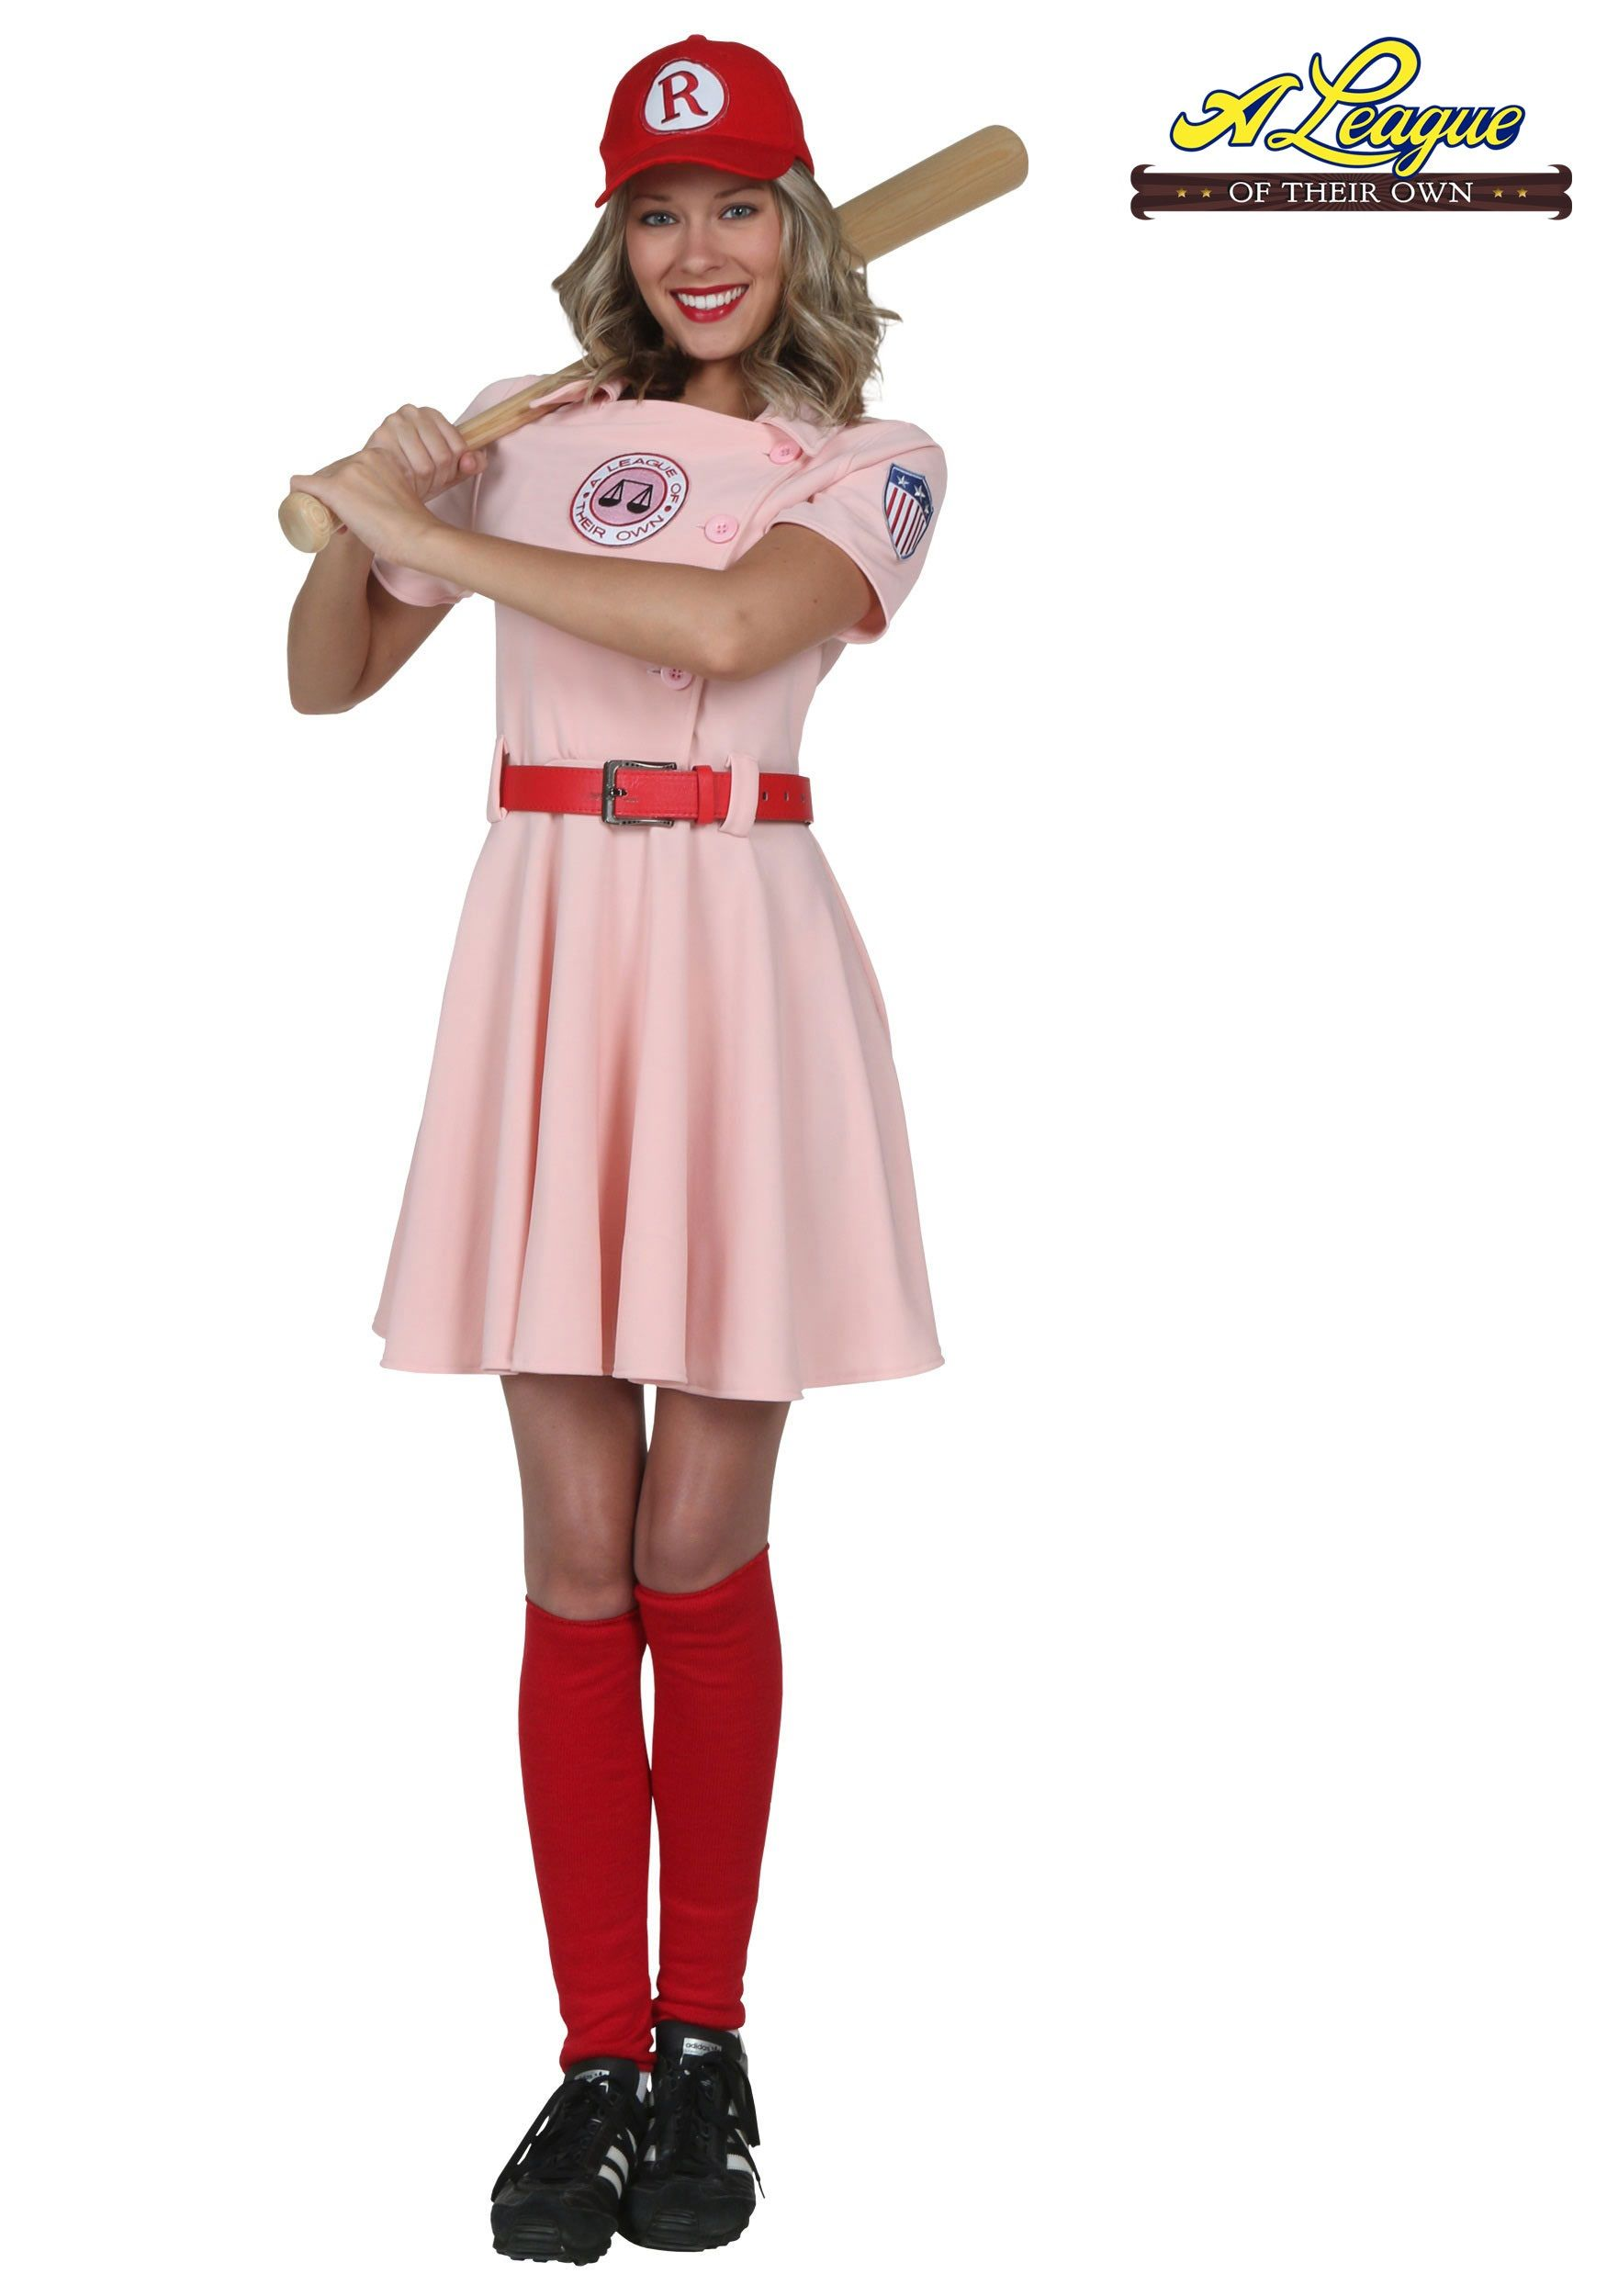 A League of Their Own Deluxe Dottie Costume | Holidays | Pinterest ...